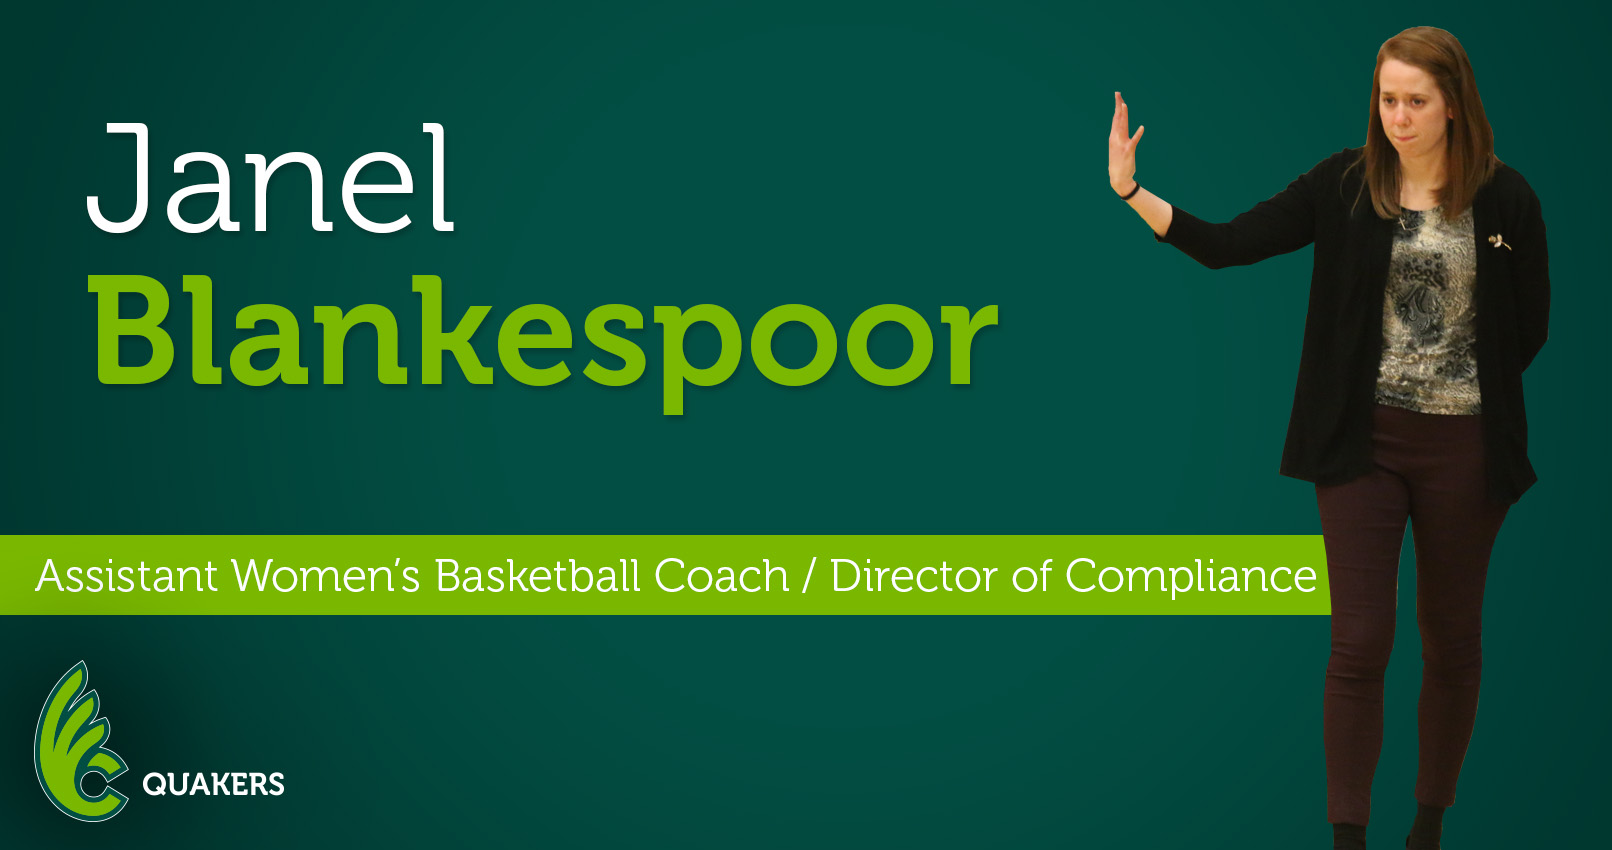 Janel Blankespoor Named Assistant Women's Basketball Coach and Director of Compliance